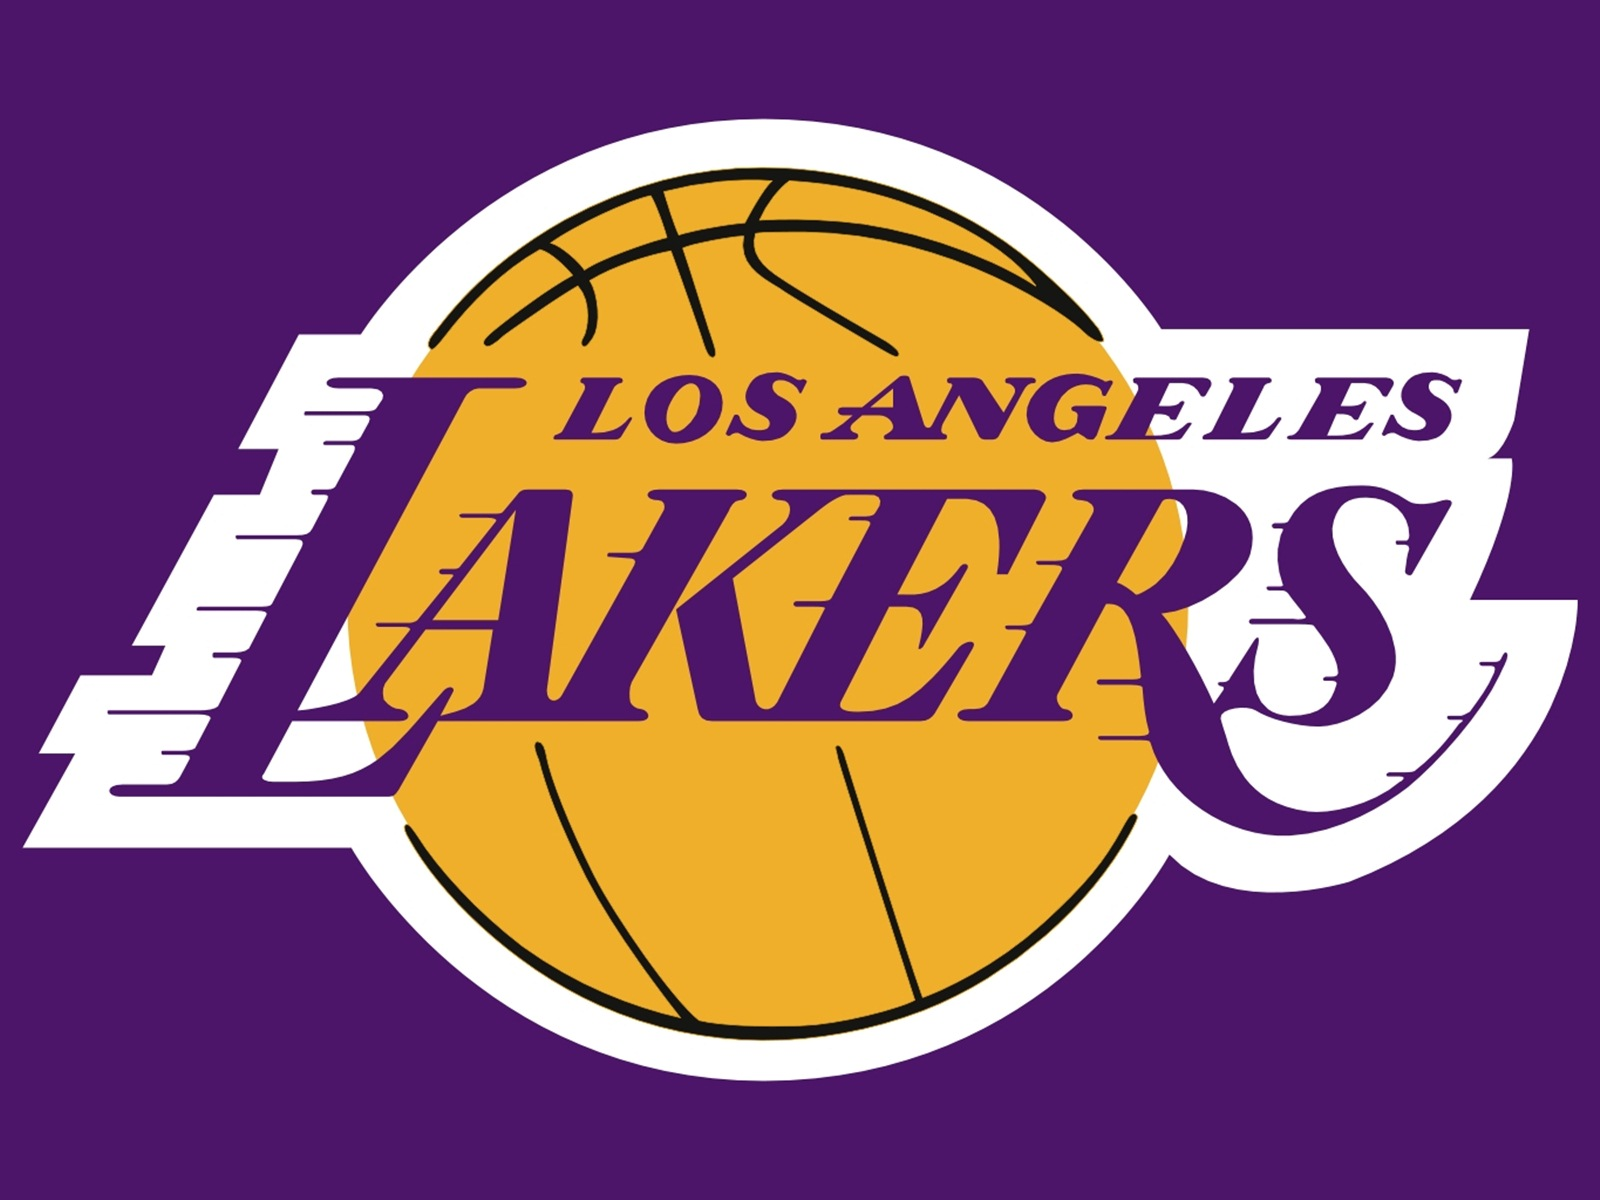 los-angeles-lakers.jpg